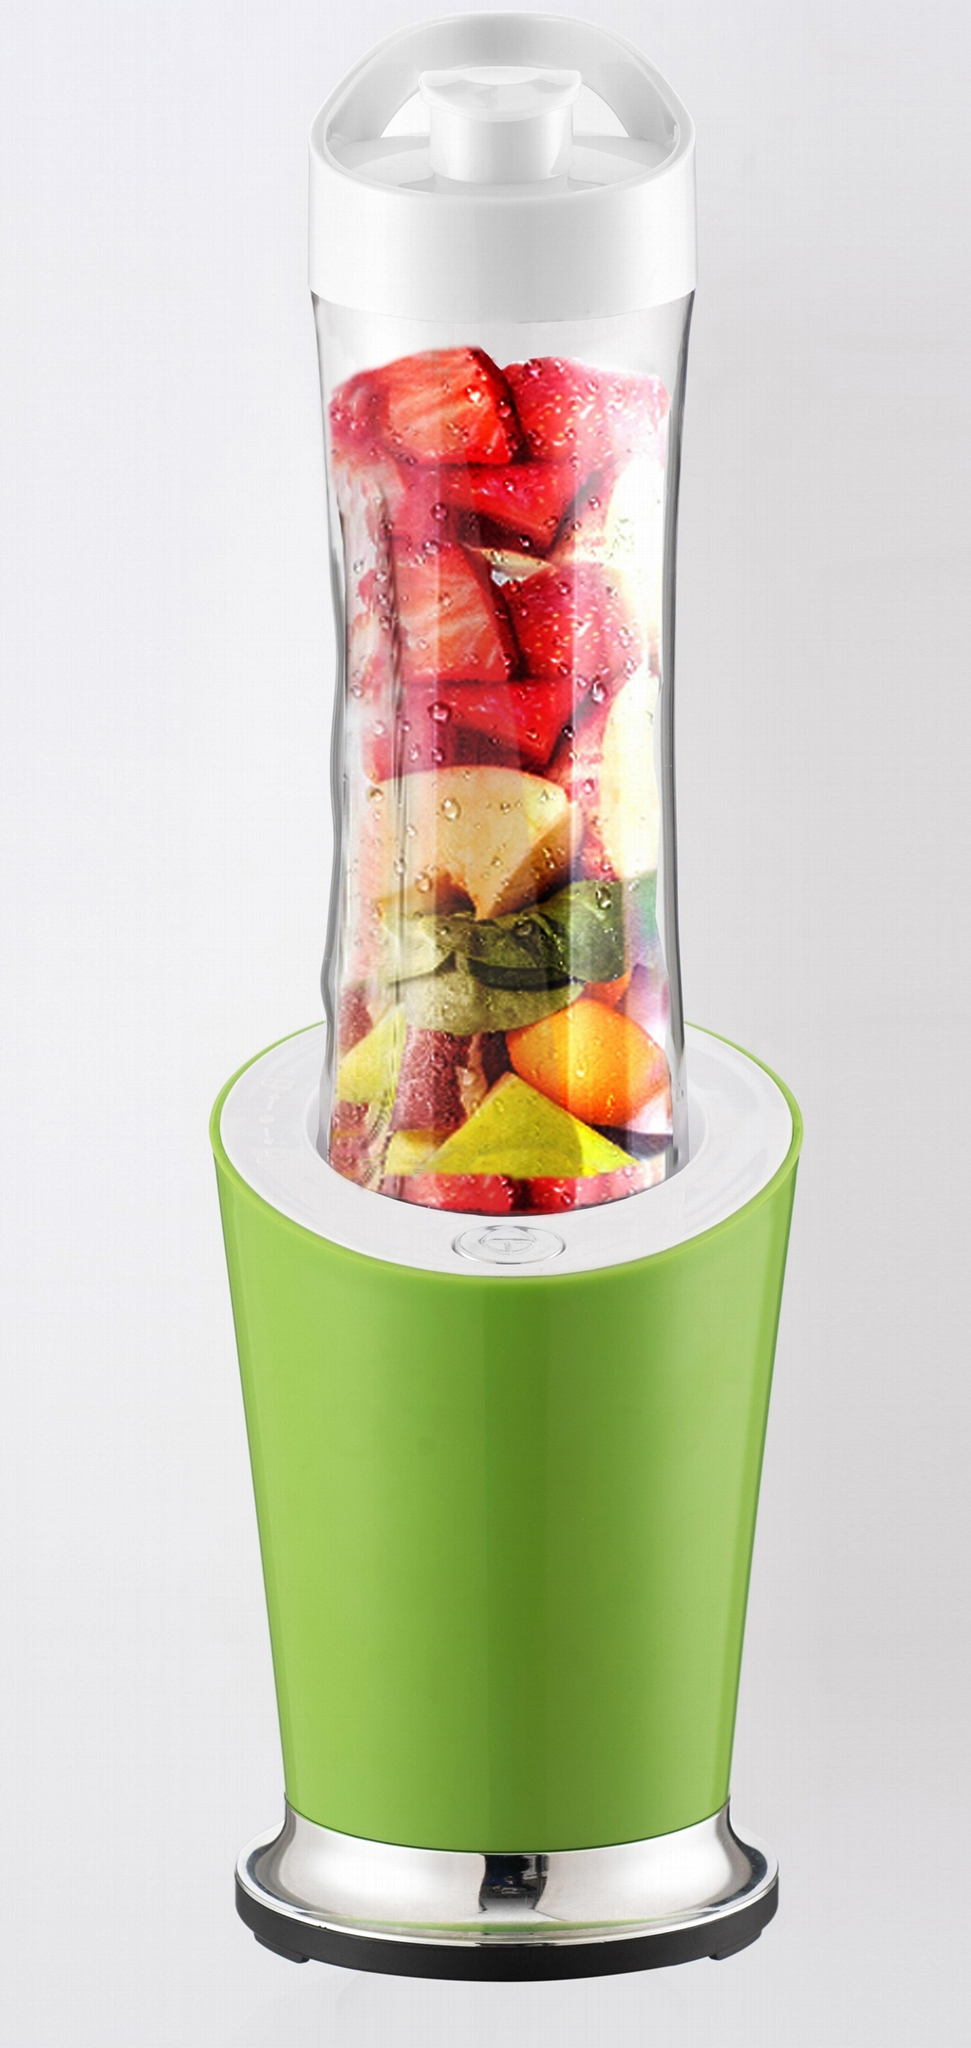 300W Electric Personal Blender Juicer 600ml Trian Jar 4